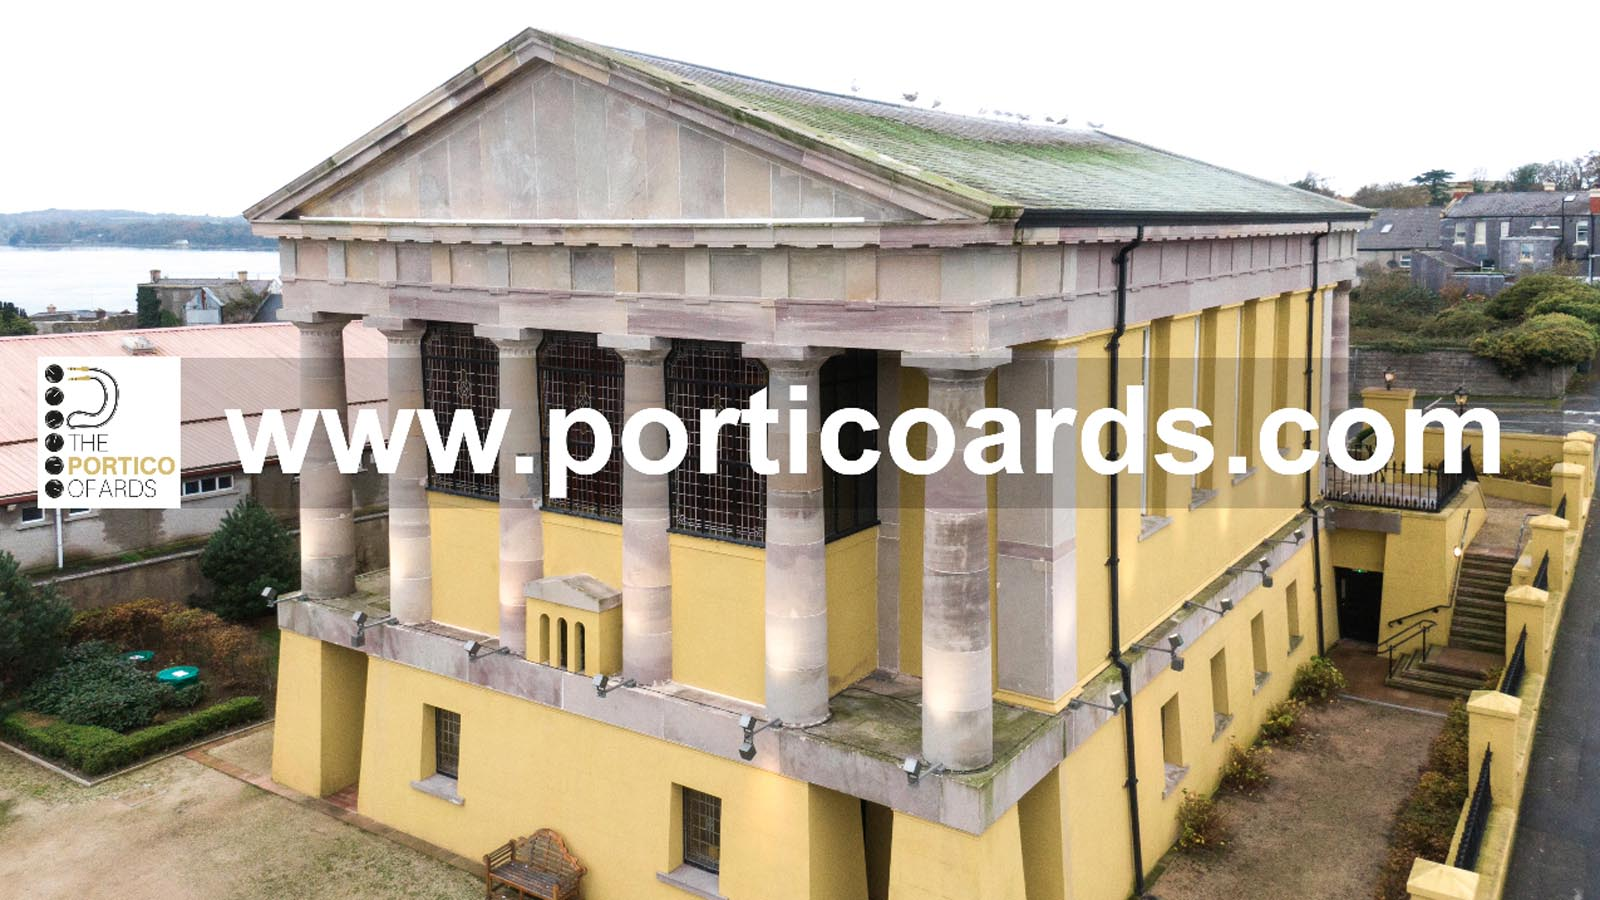 Aerial drone photography and video production services Dublin and Ireland portfolio - screenshot of Portico Ards video